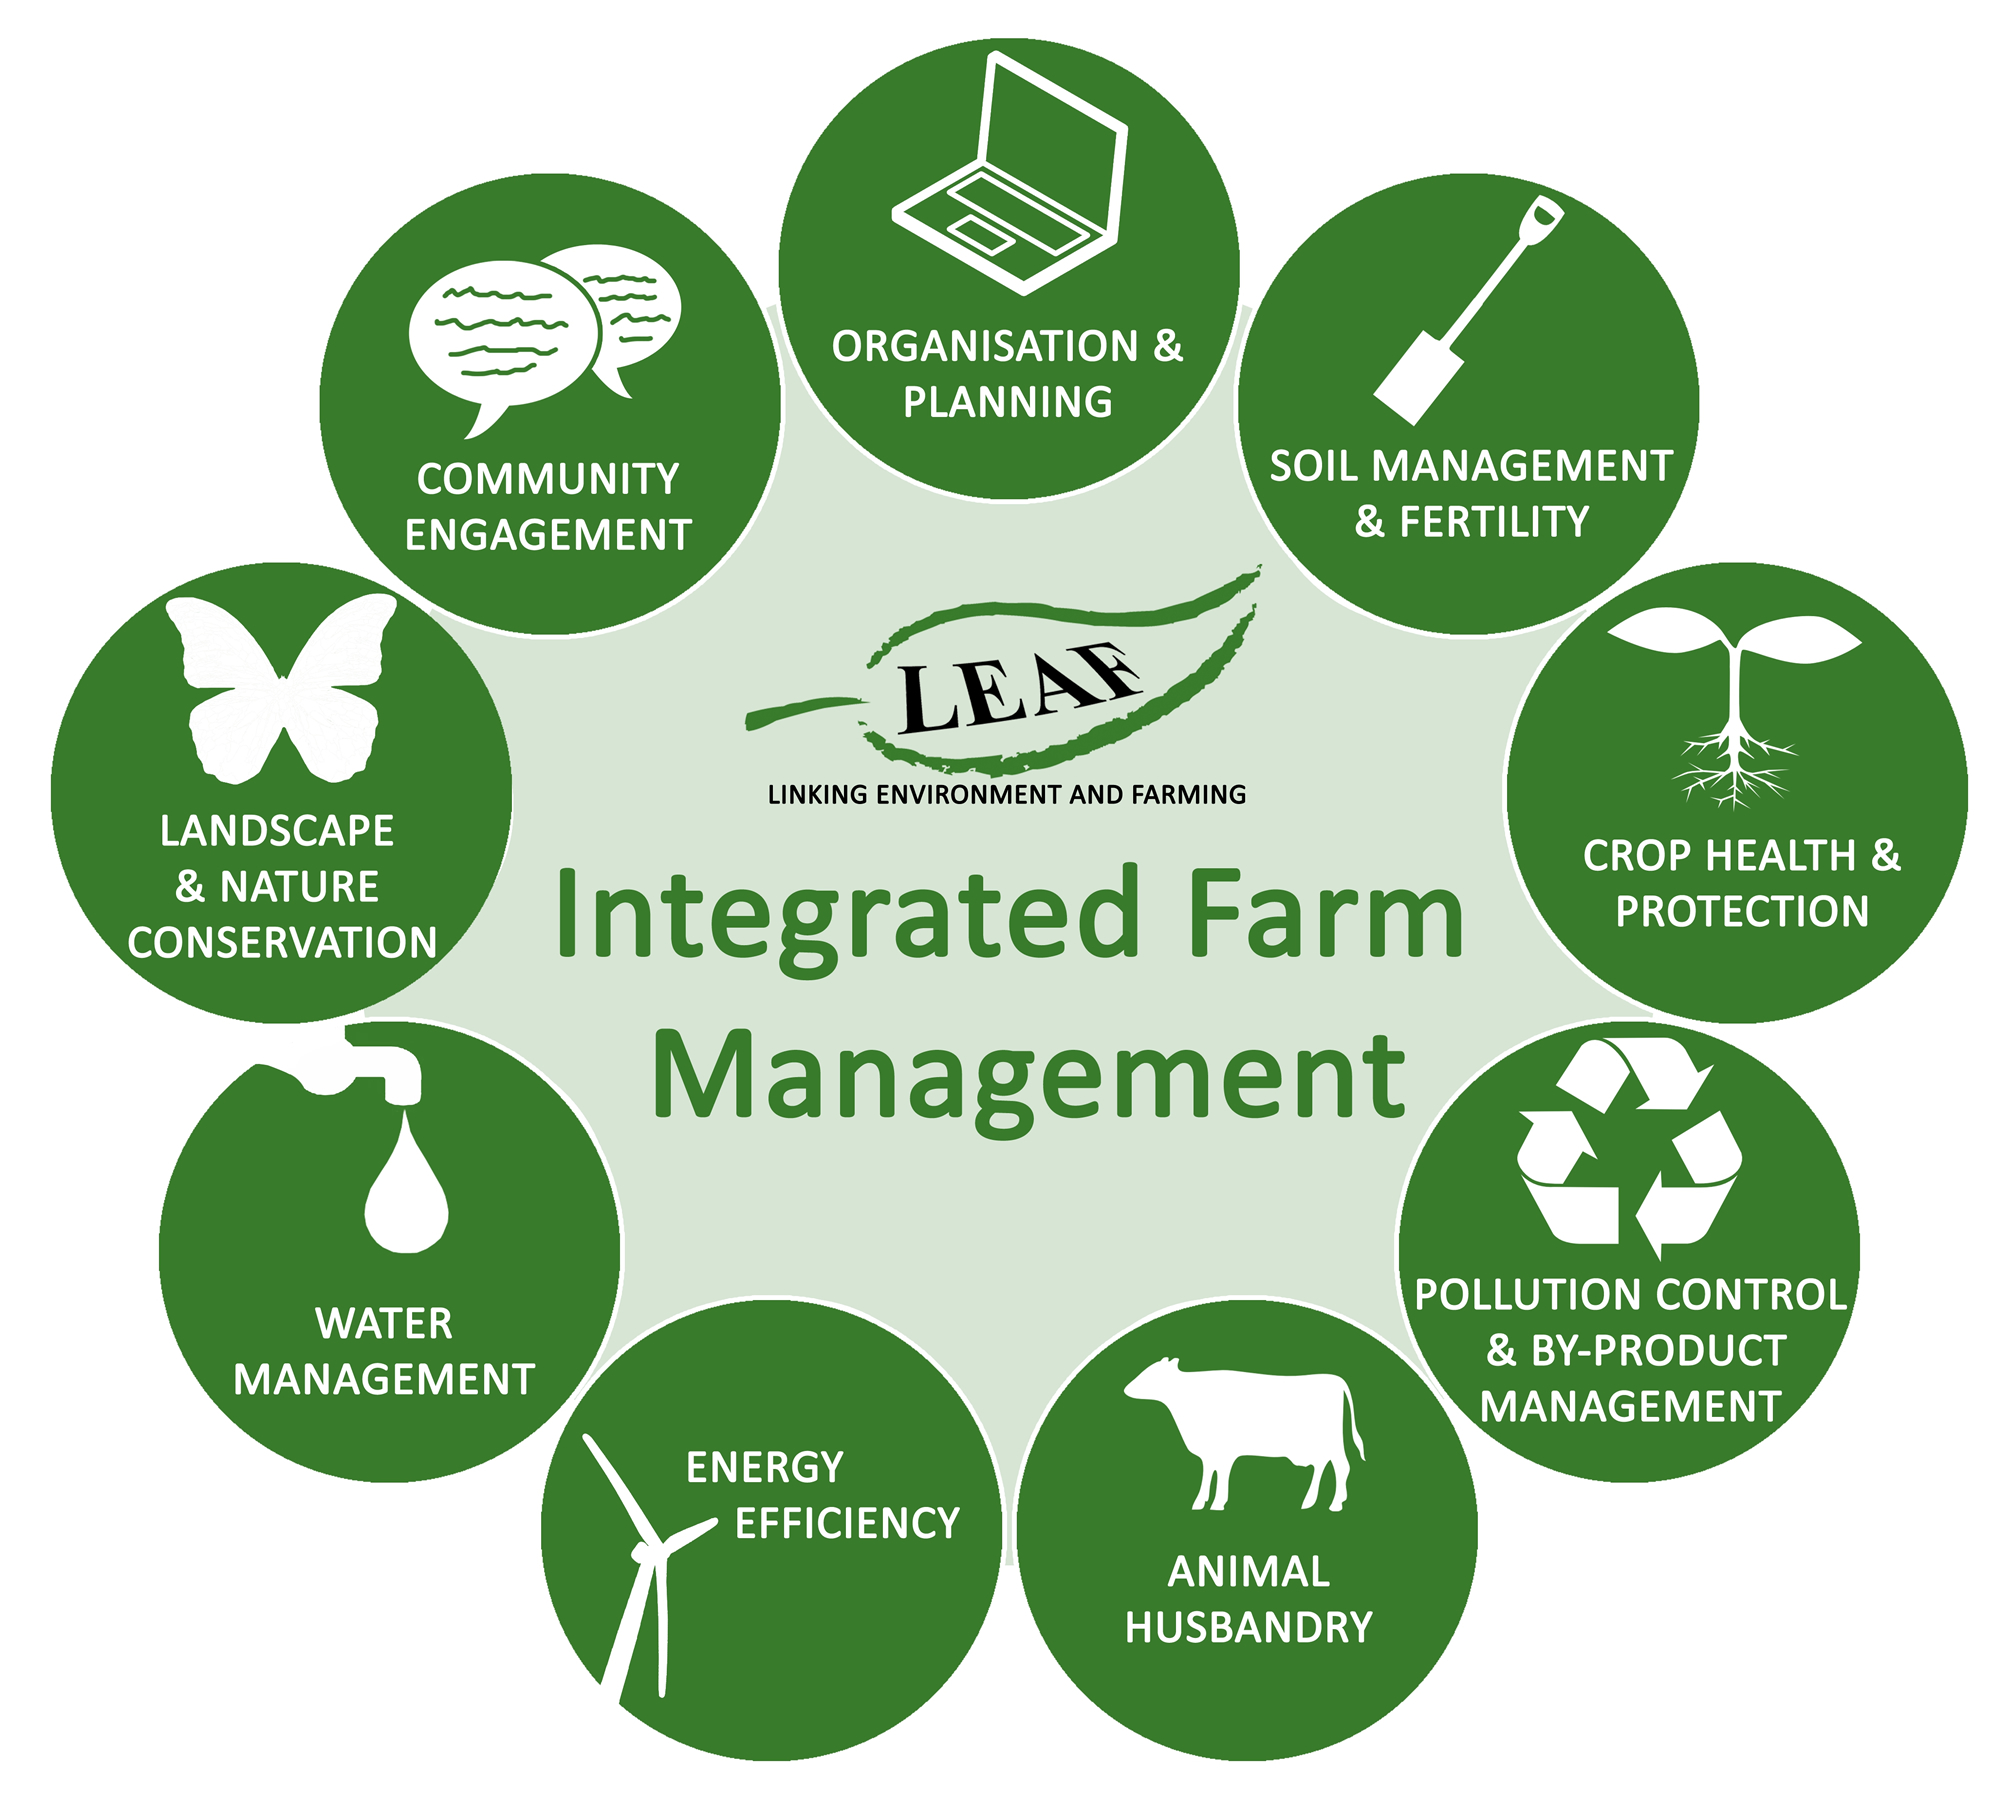 Diagram showing the principles of Integrated Farm Management